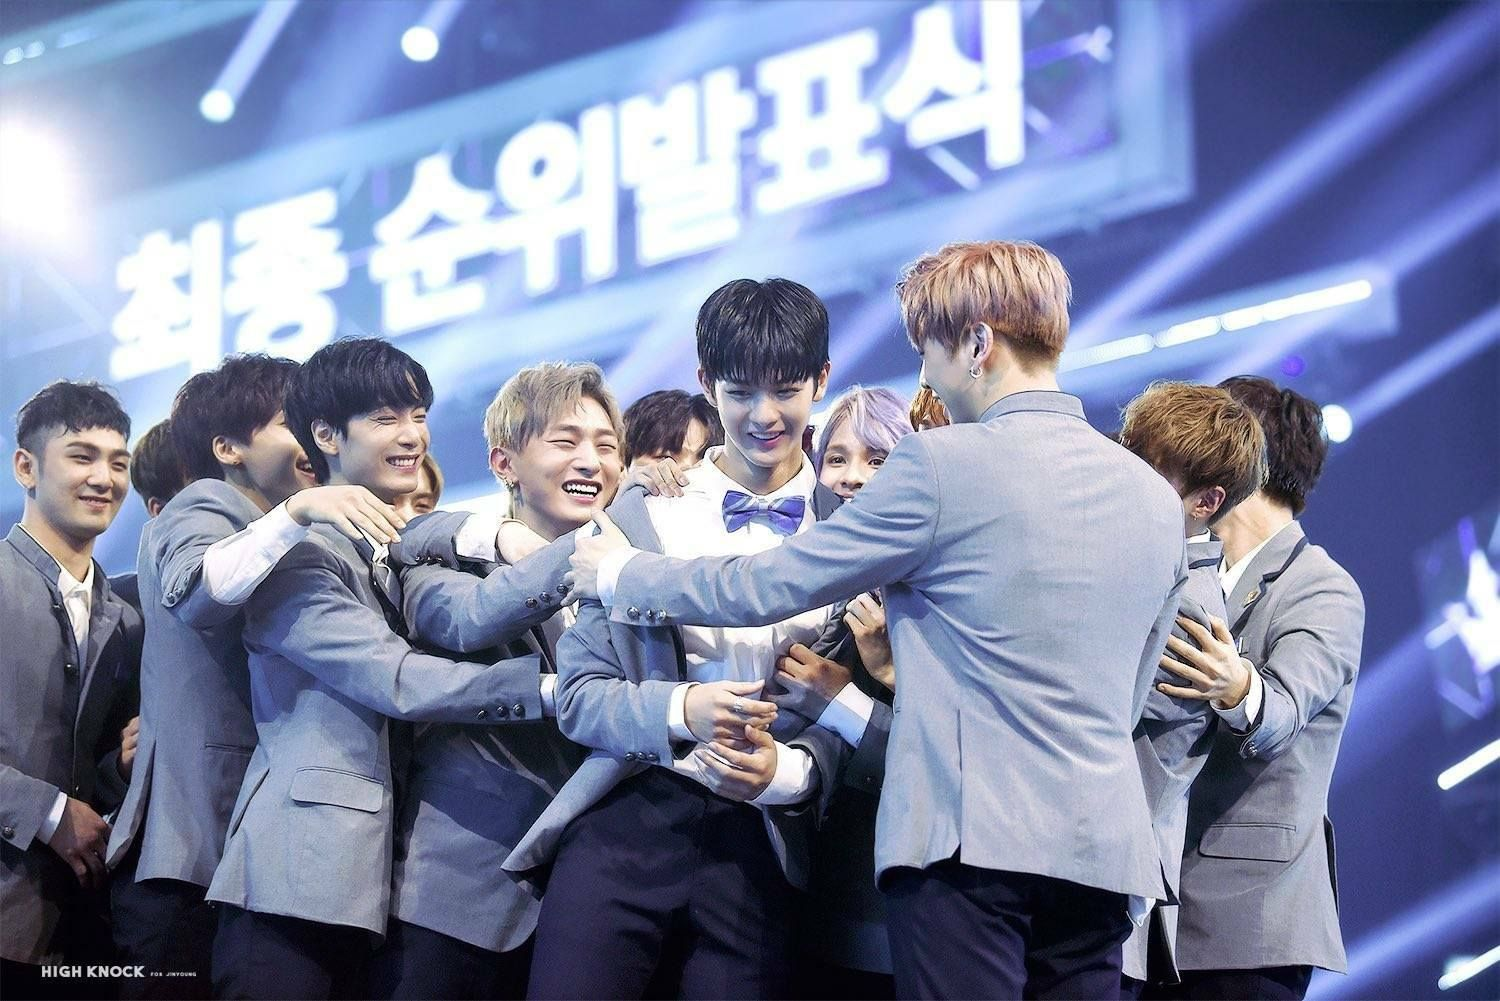 broduce101 final I'm crying TT